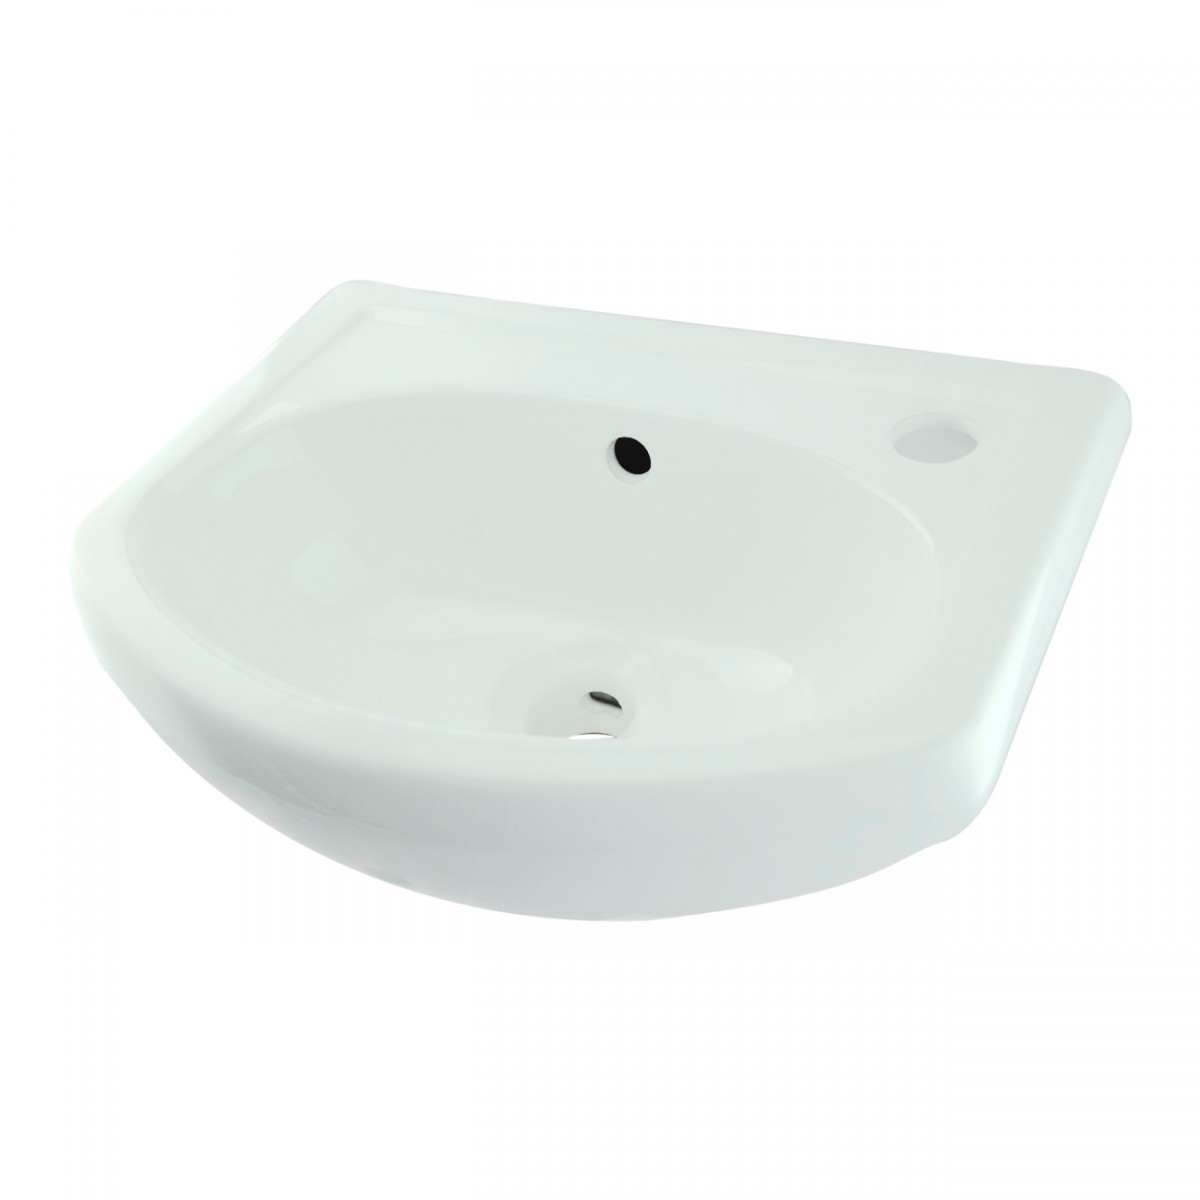 White Small Bathroom Wall Mount Sink Rounded Space Saving Bathroom Wall Mount Sinks Modern White Bathroom Sink Vitreous China Bathroom Sinks